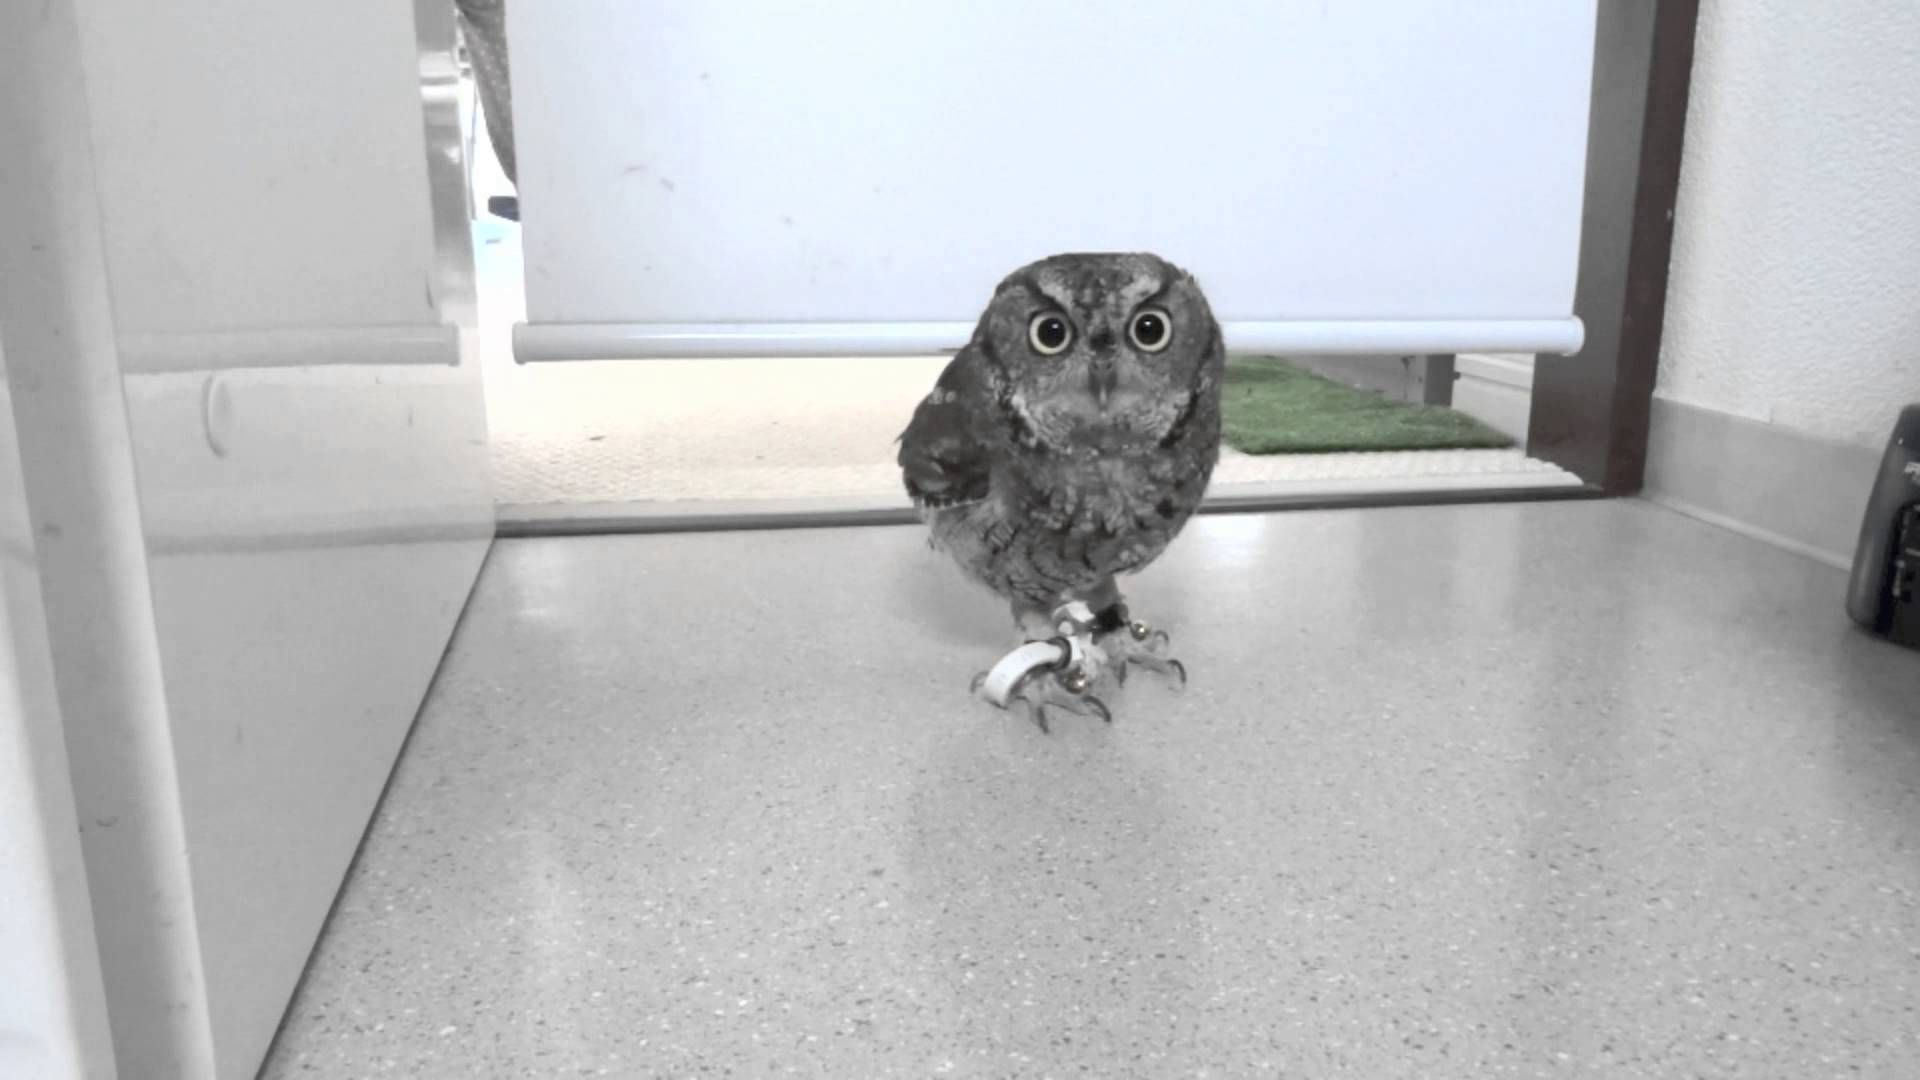 Screech Owl Makes Dramatic Entrance Into Kitchen | Laughing